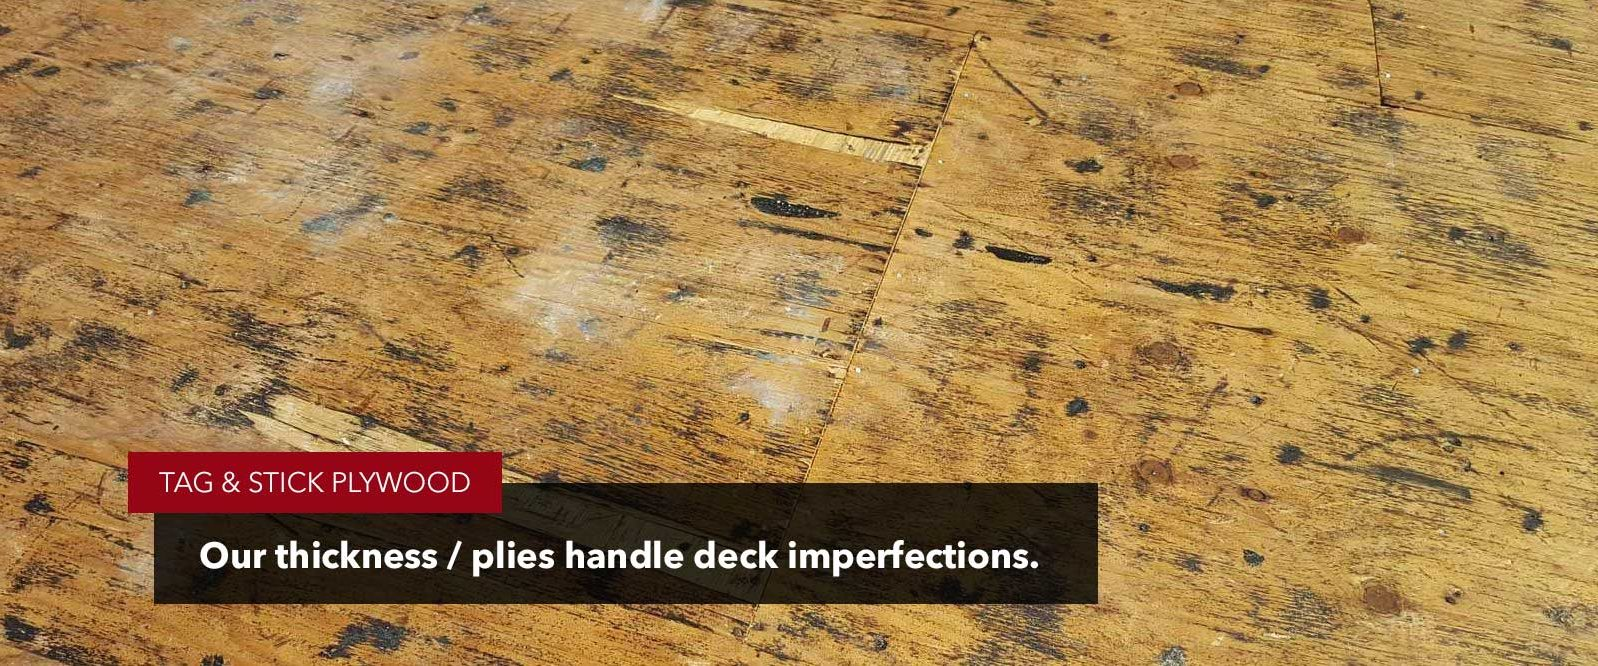 underlayment handles deck imperfections